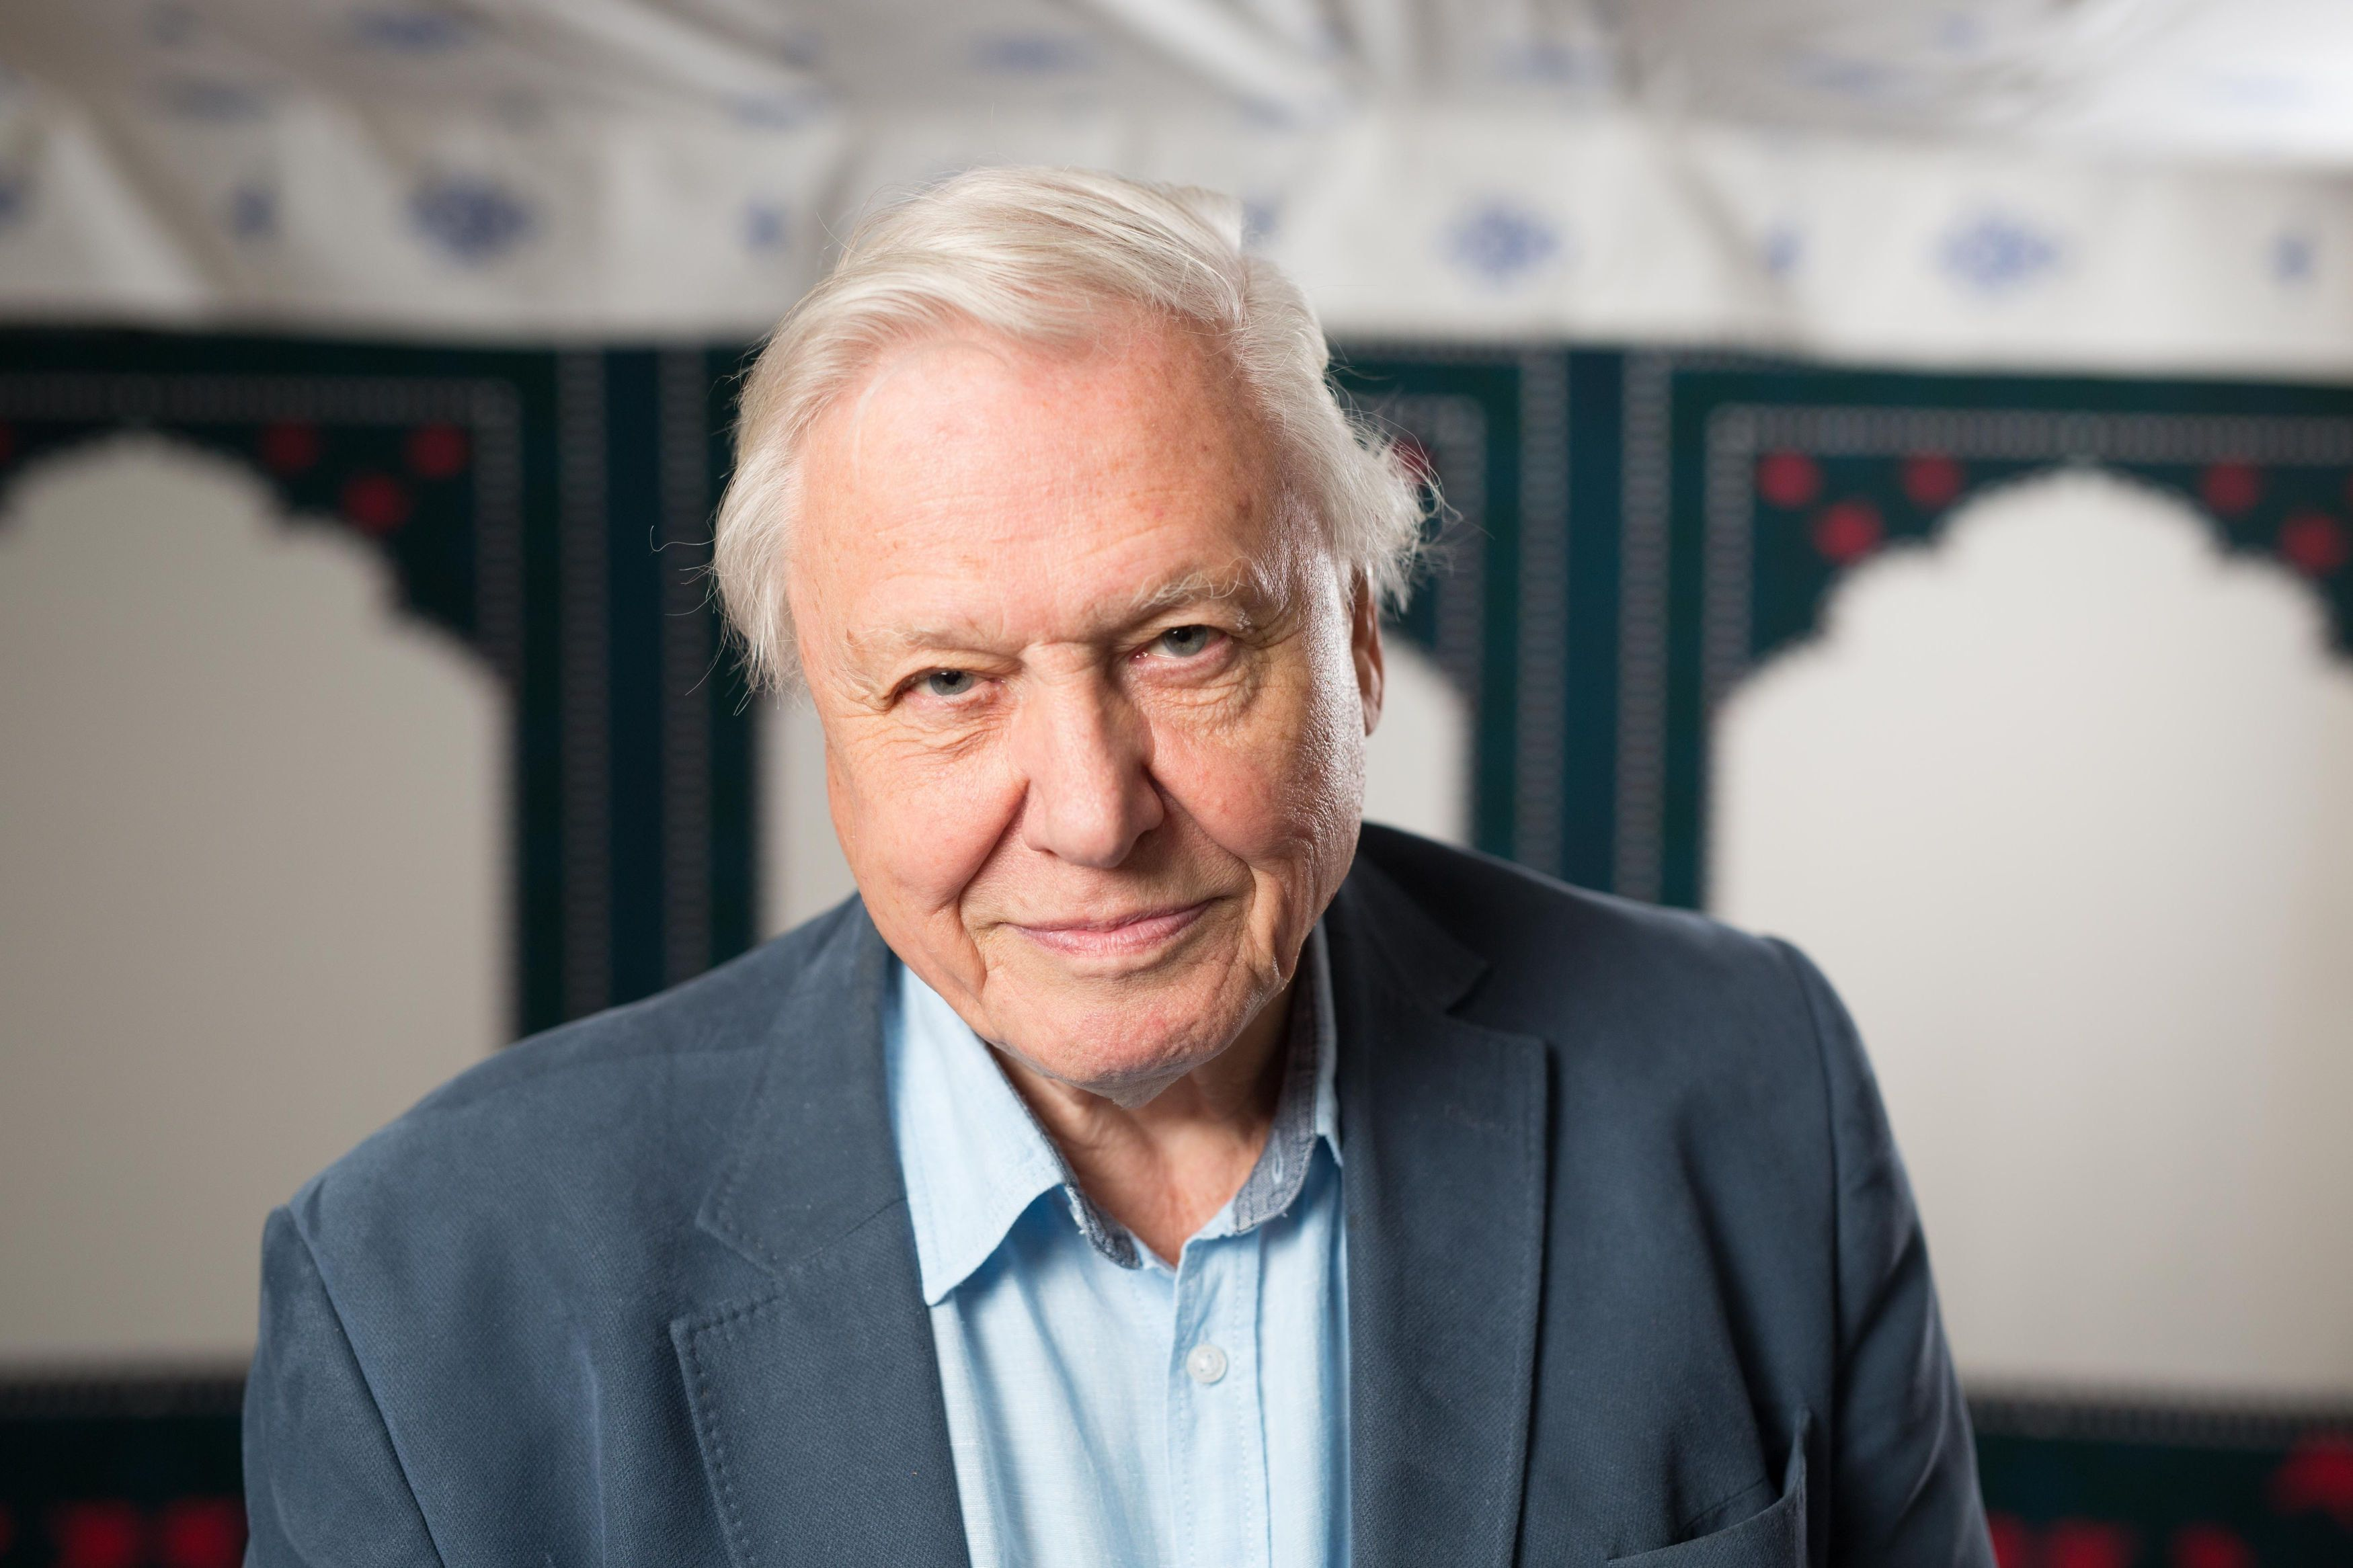 Famed naturalist David Attenborough said he doesn't remember plant names like he used to.